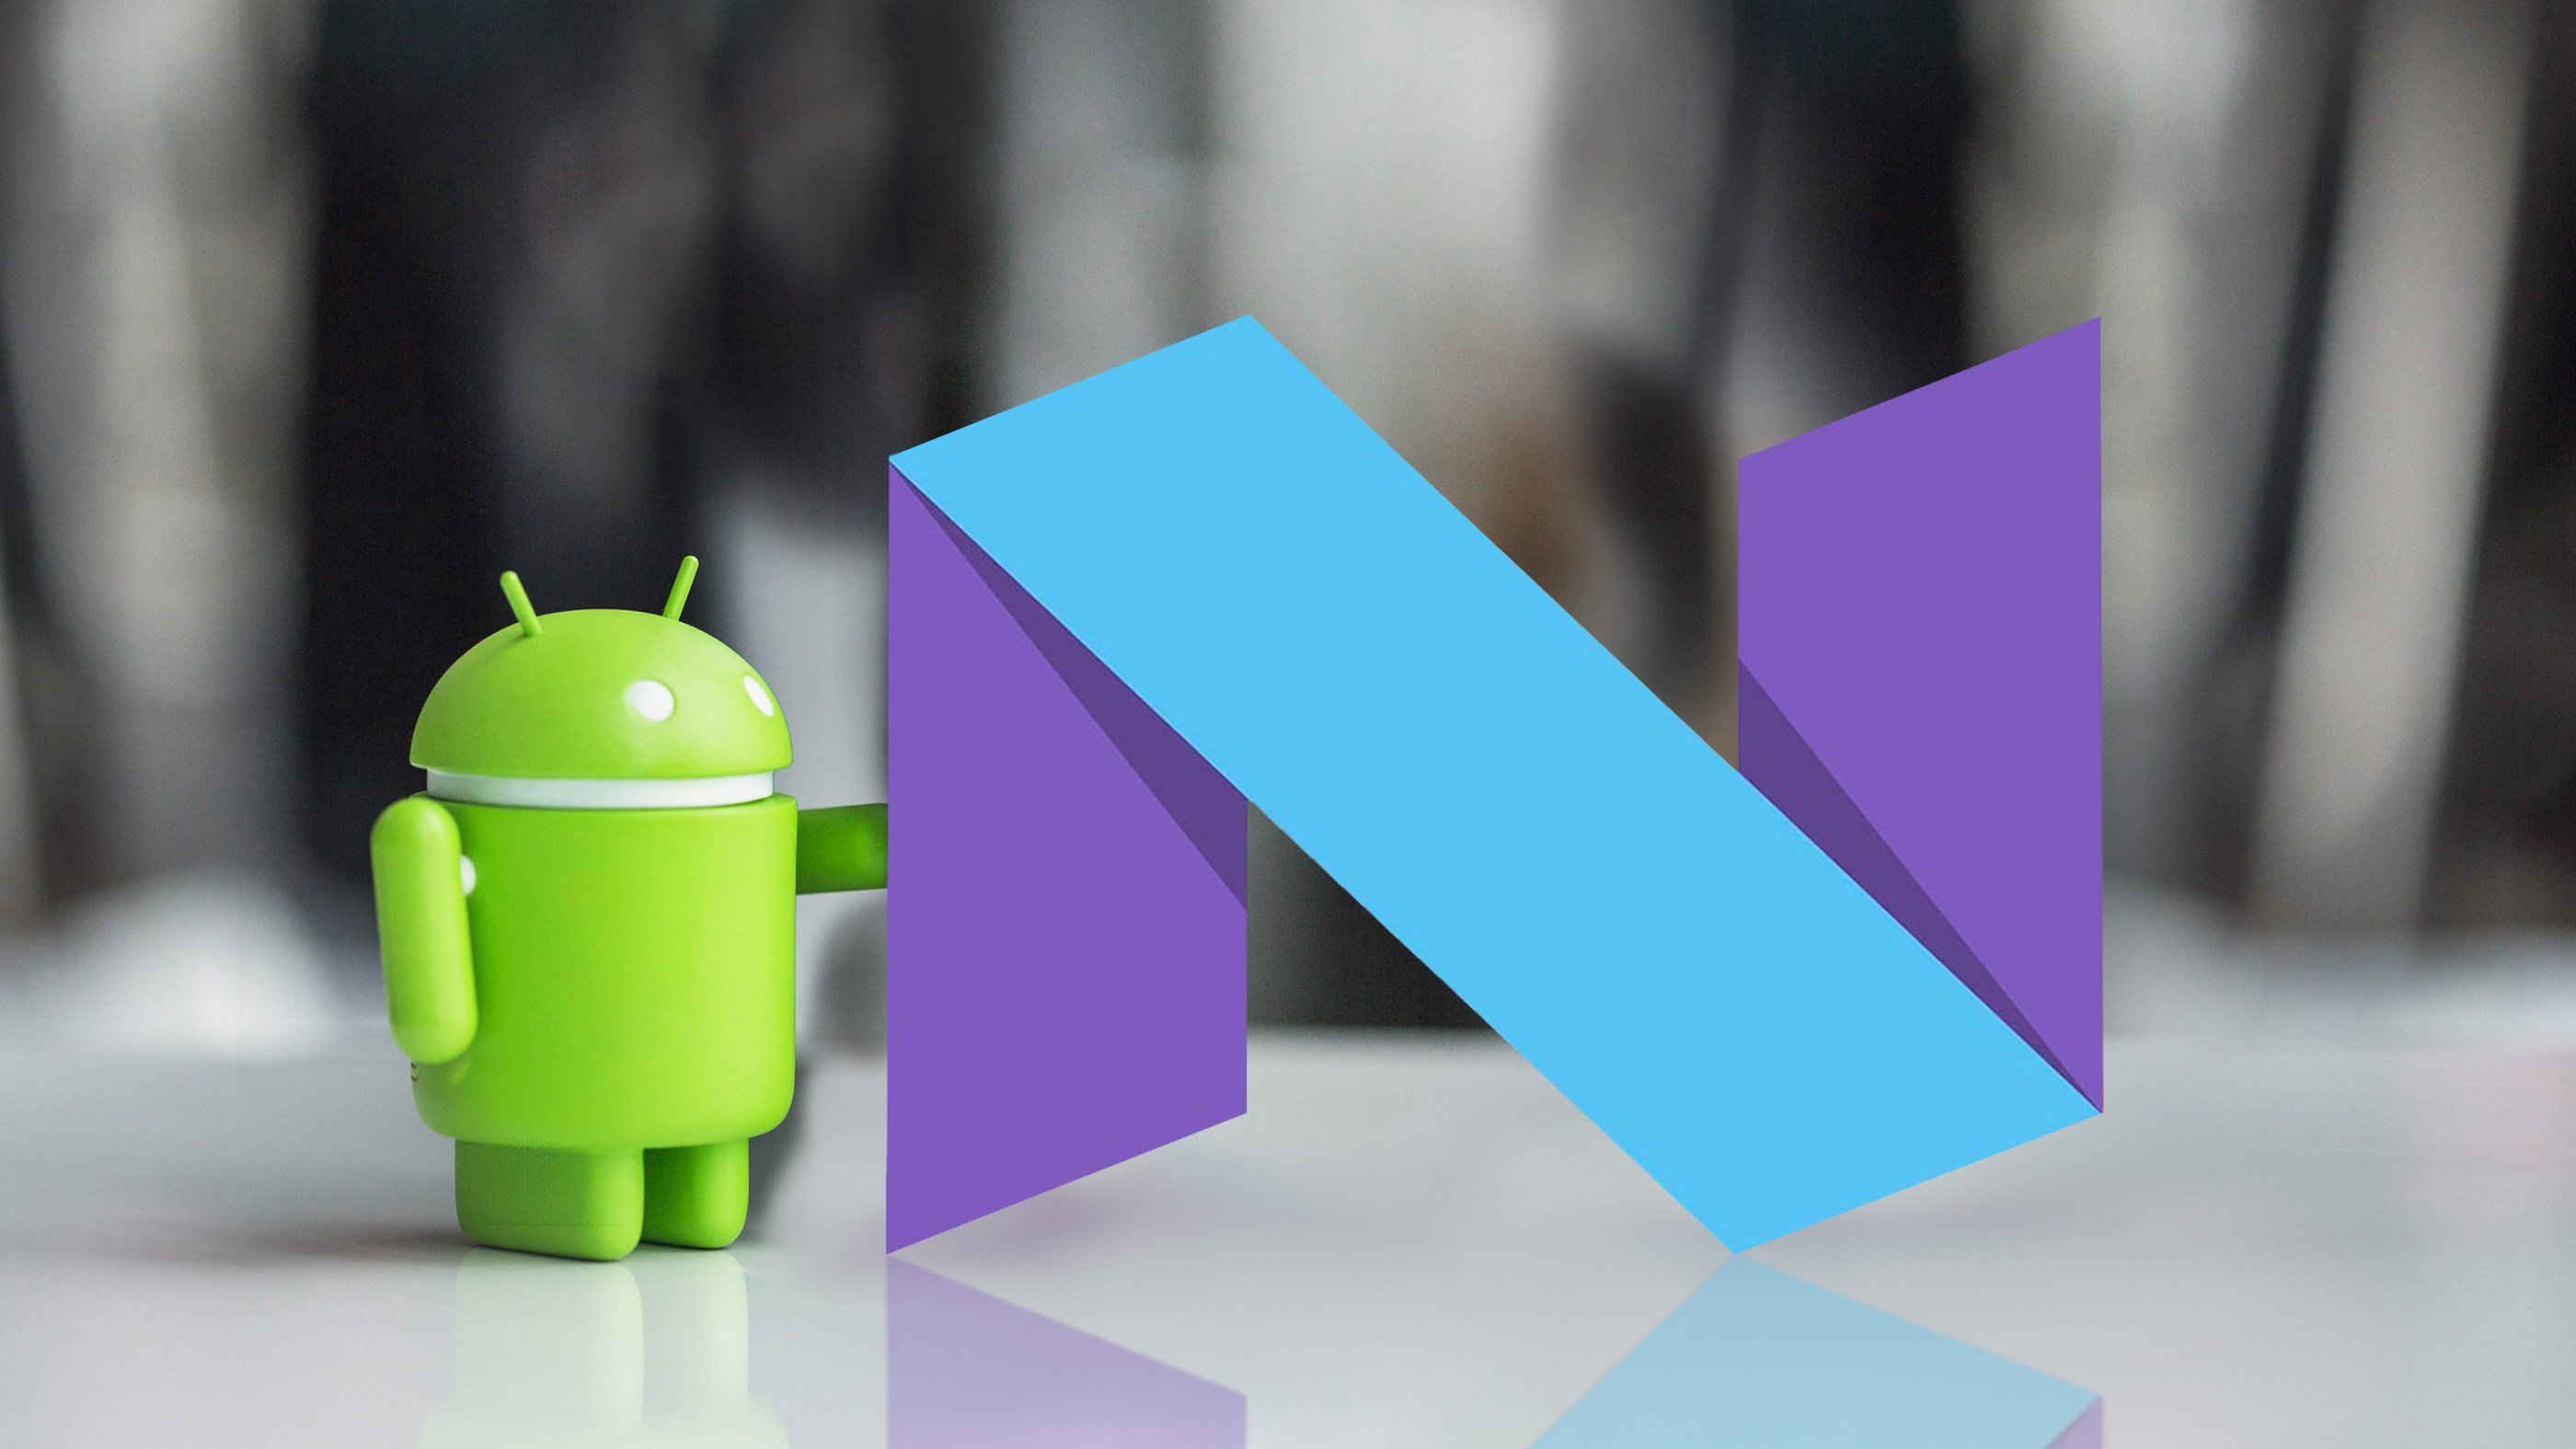 Android 7.1 Nougat : la Developer Preview pour bientôt, la version finale avancée